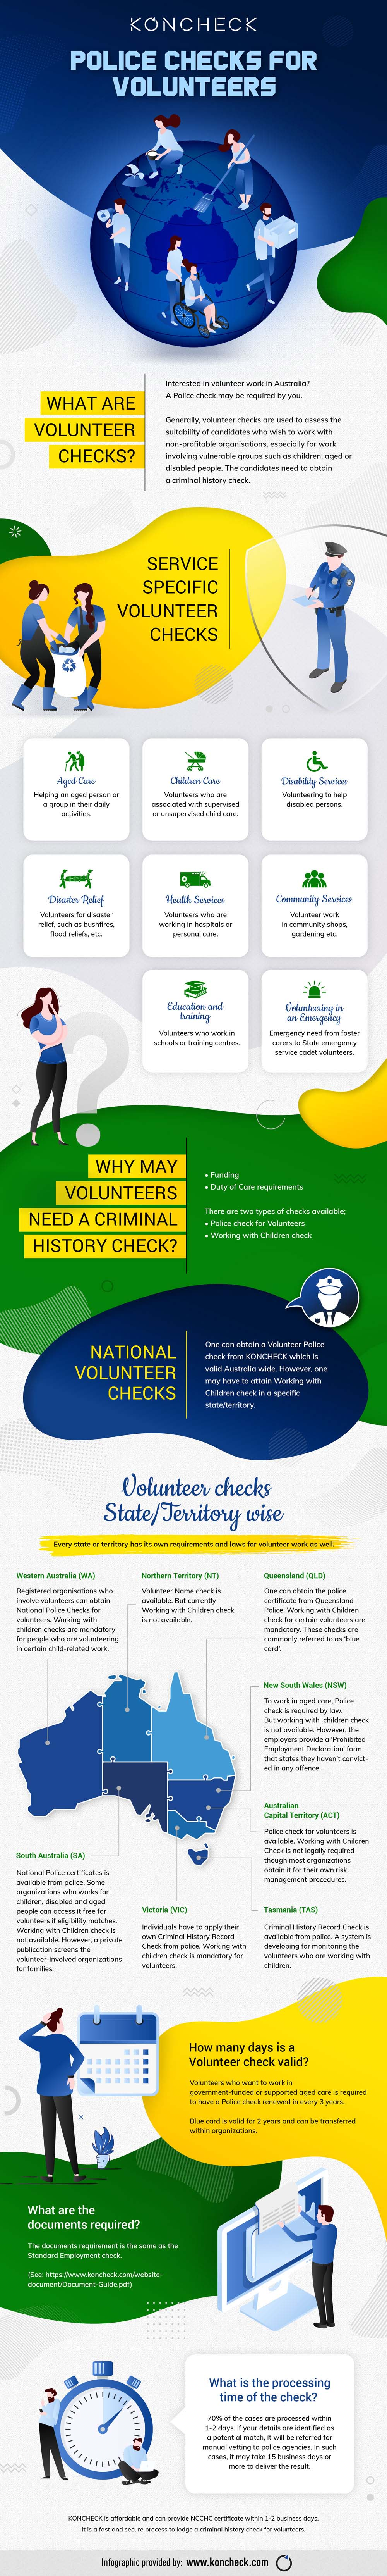 Why it is Important for a Volunteer to Obtain a National Criminal History Check